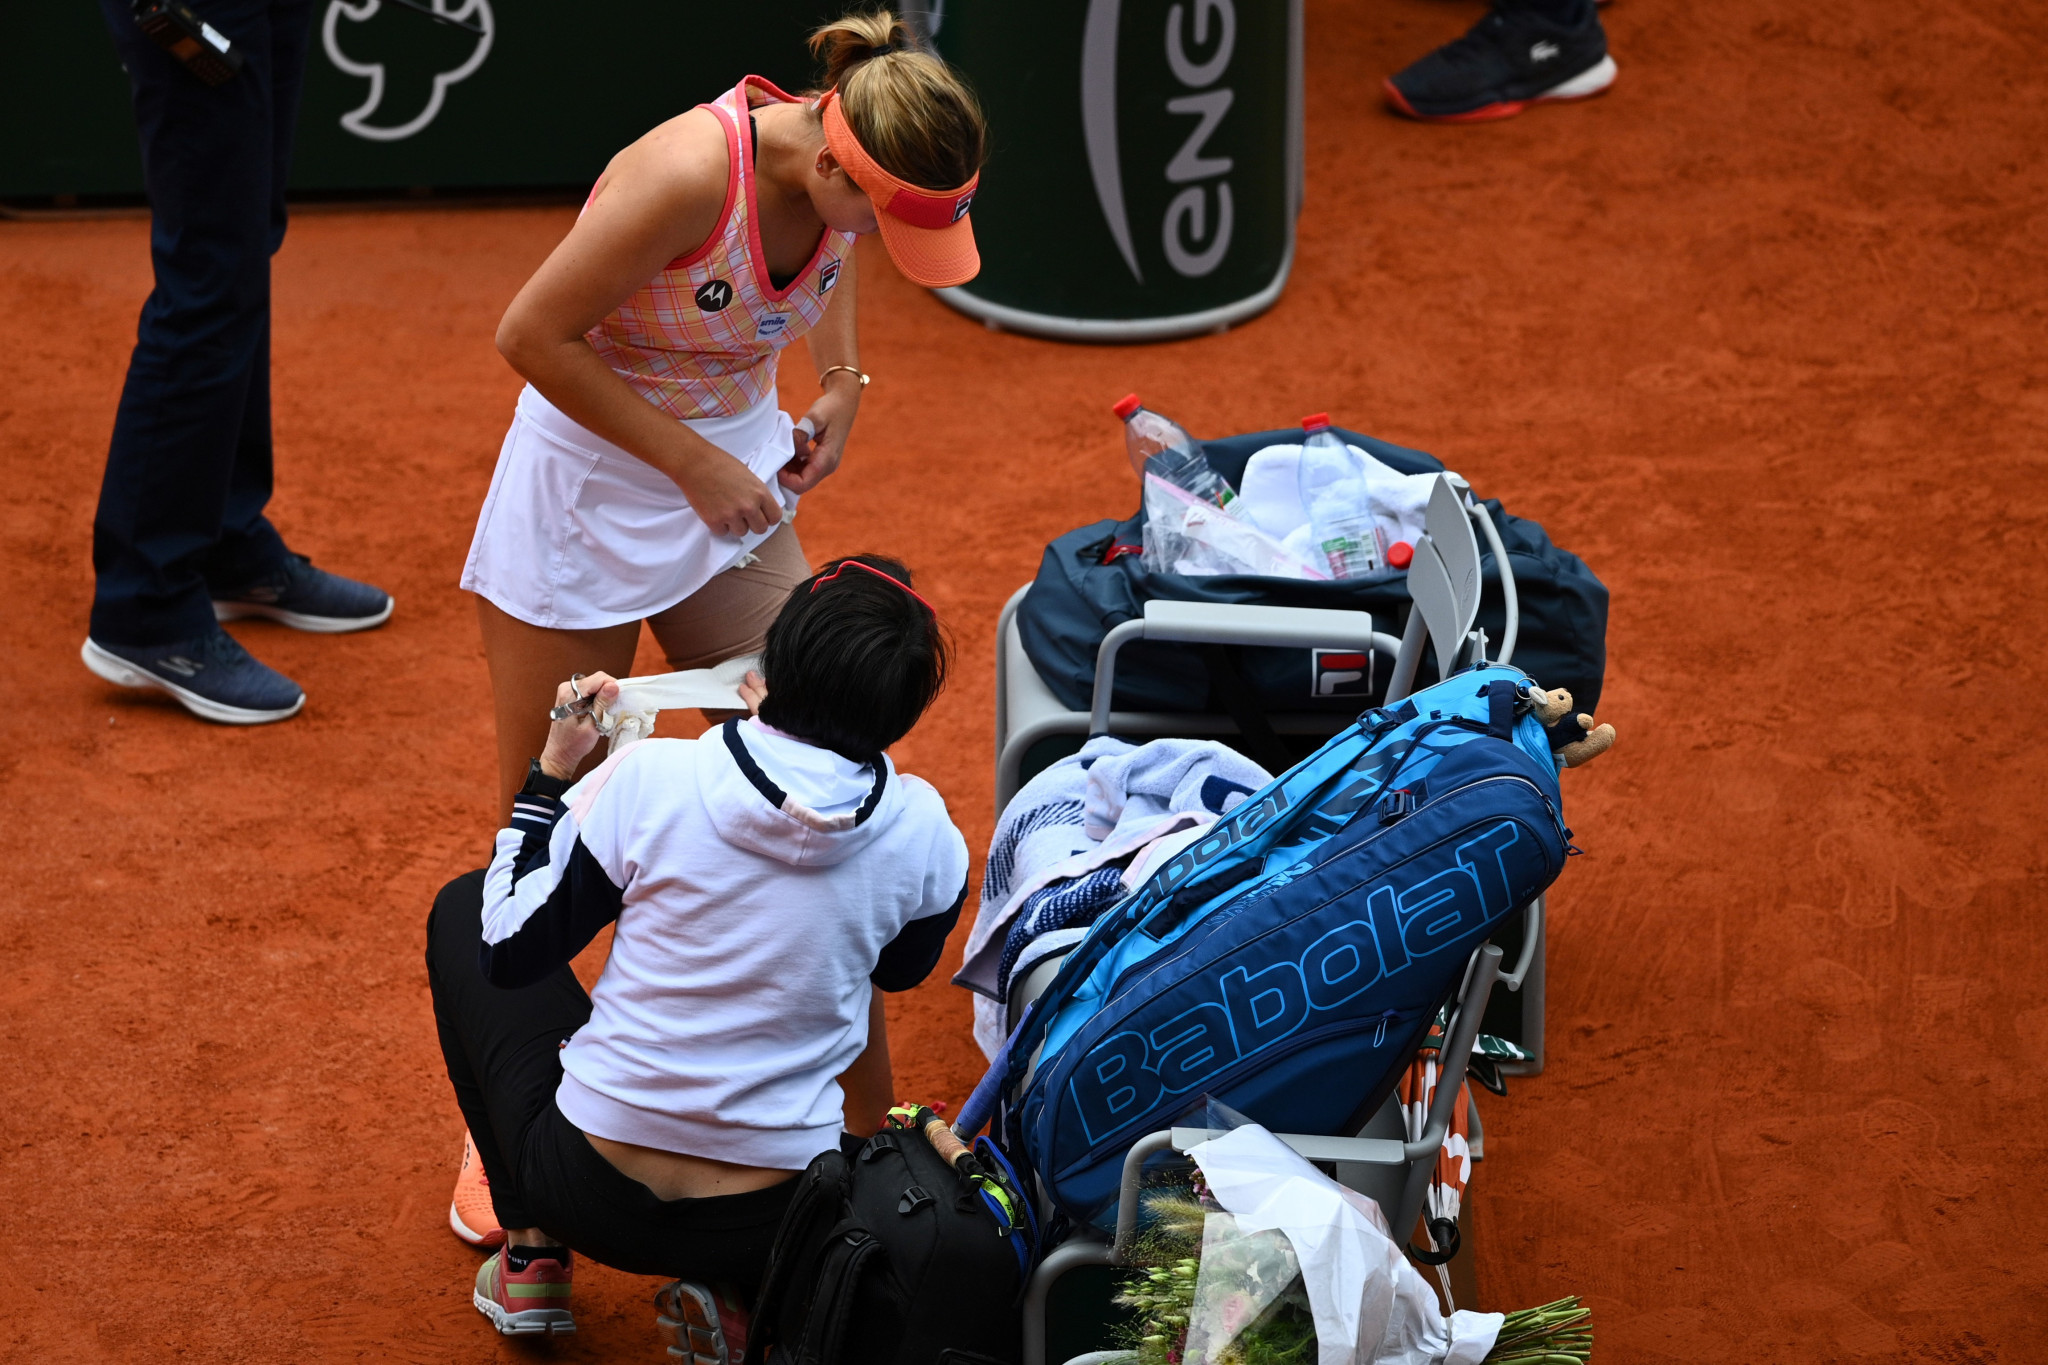 Kenin received treatment on her left thigh in the second set, but lost every game following the medical timeout ©Getty Images